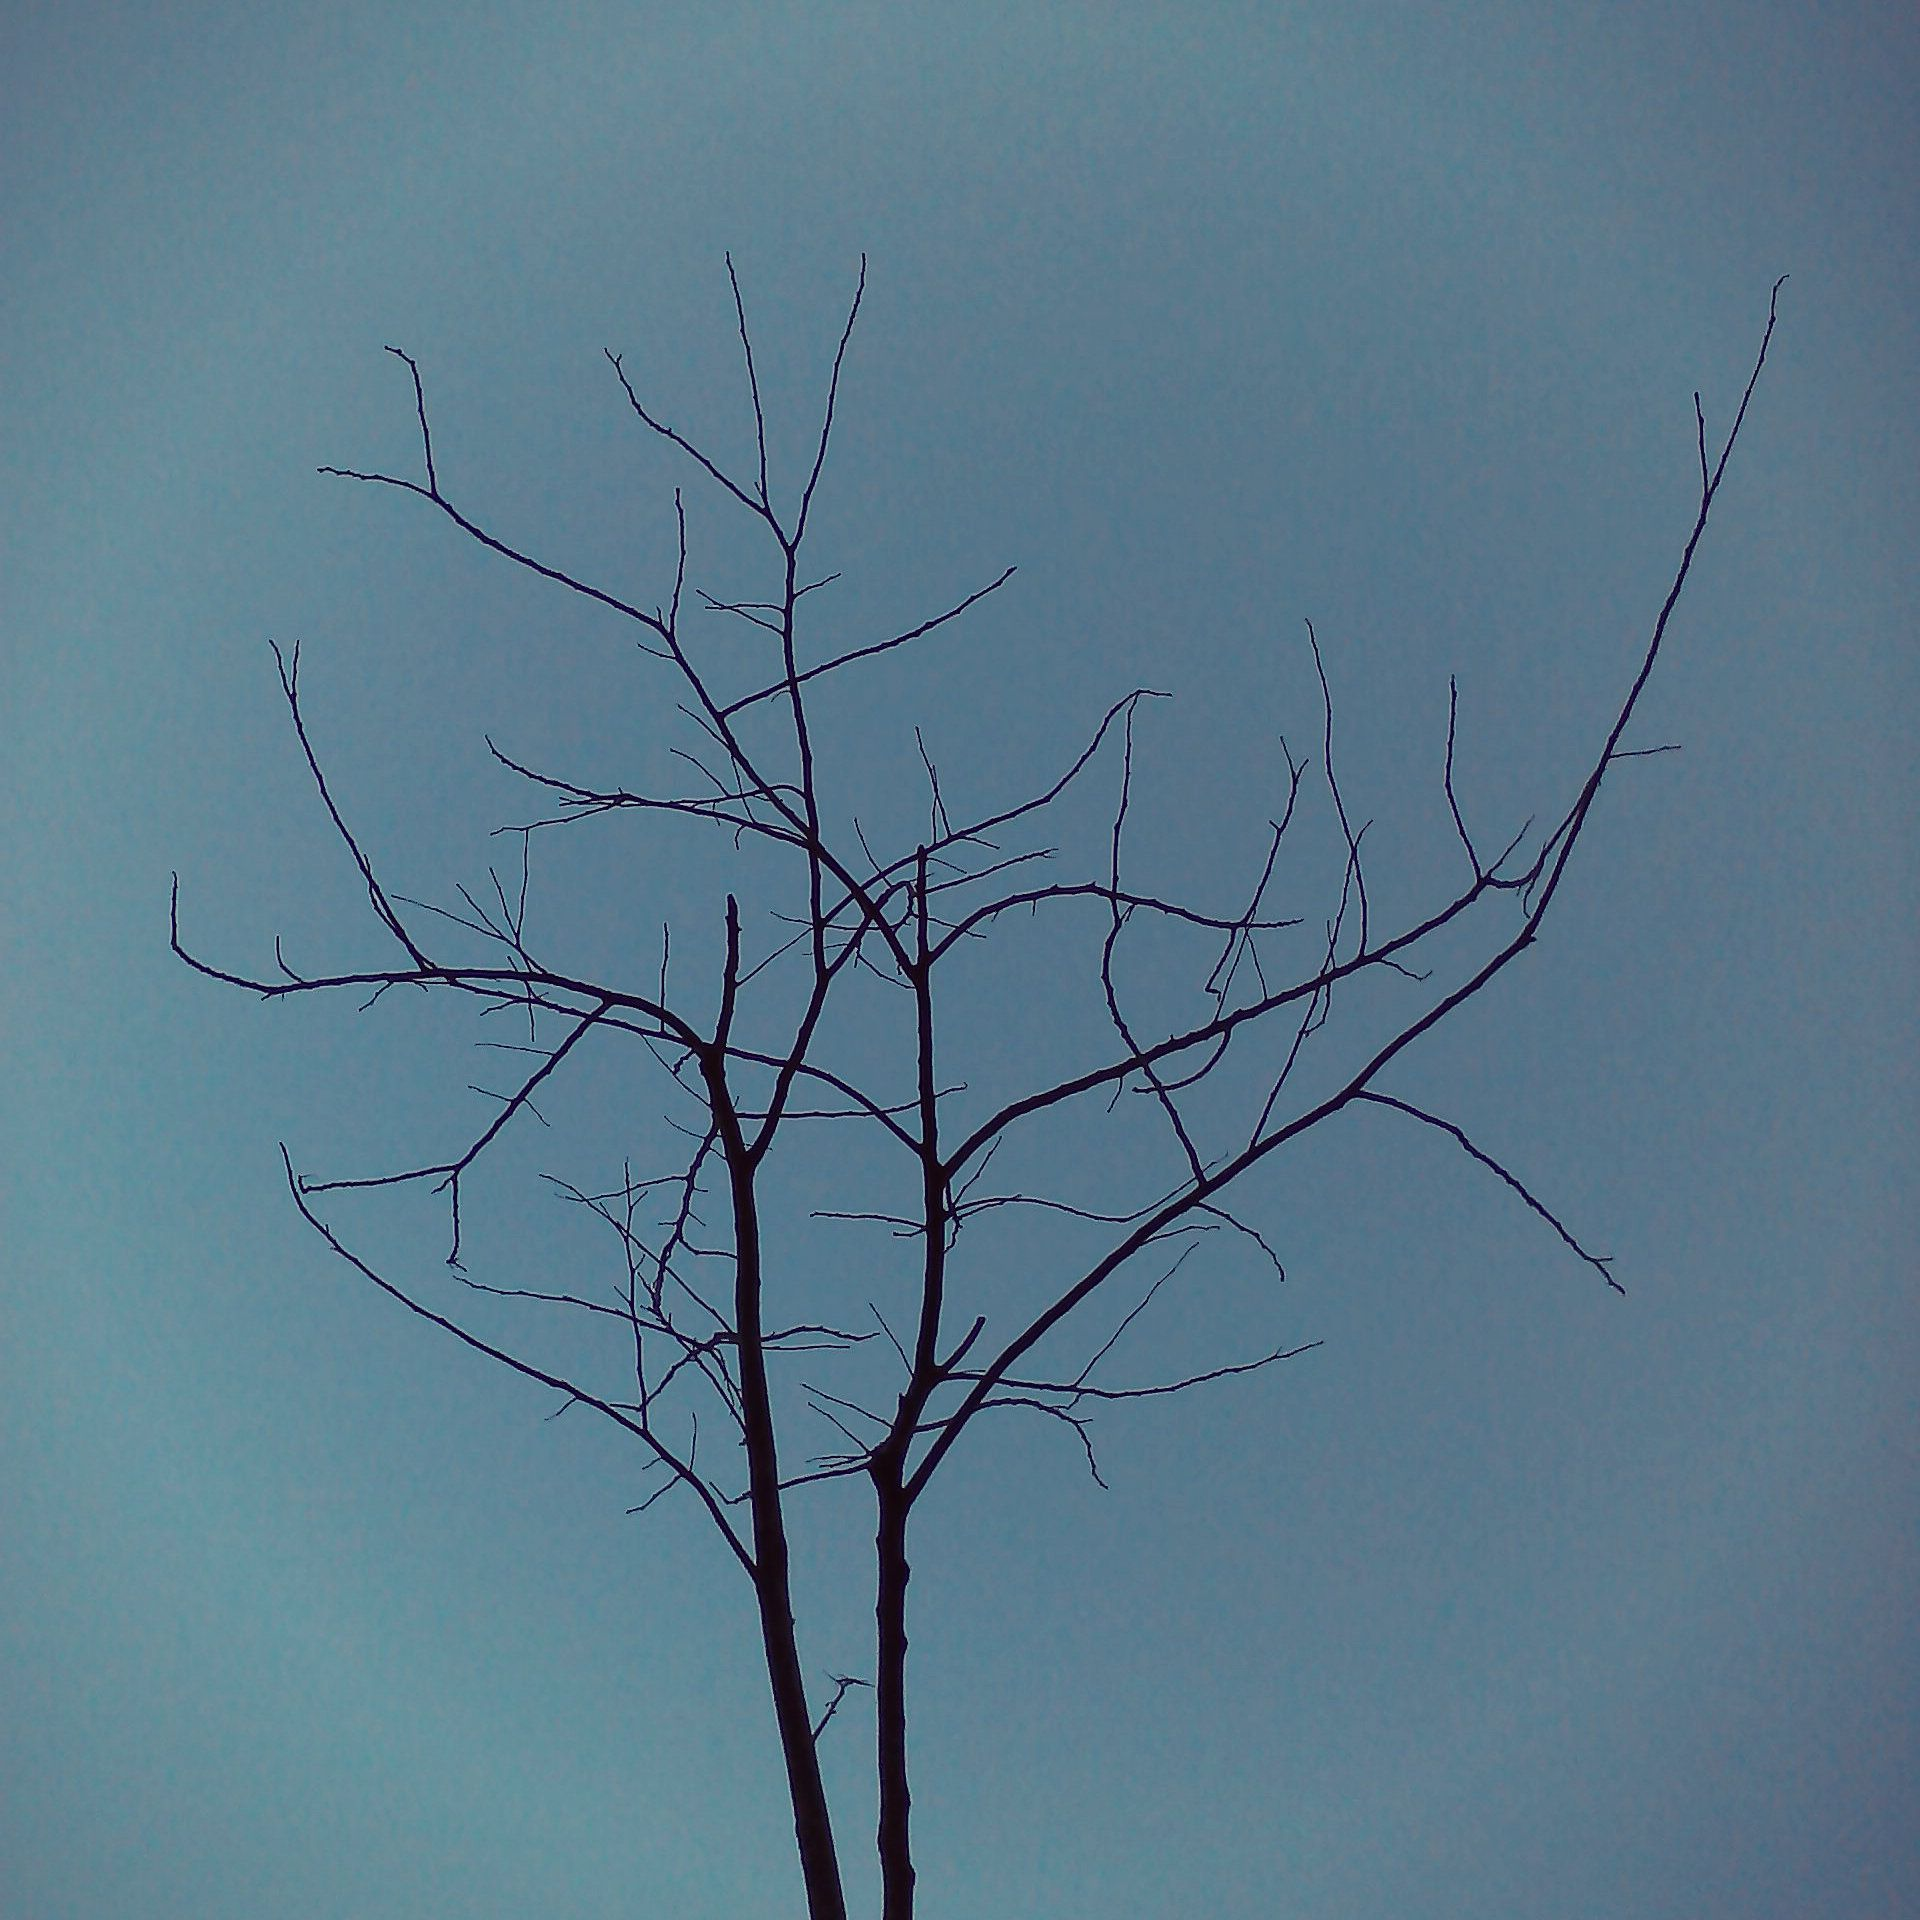 lines, branch sillouette, photography, sky